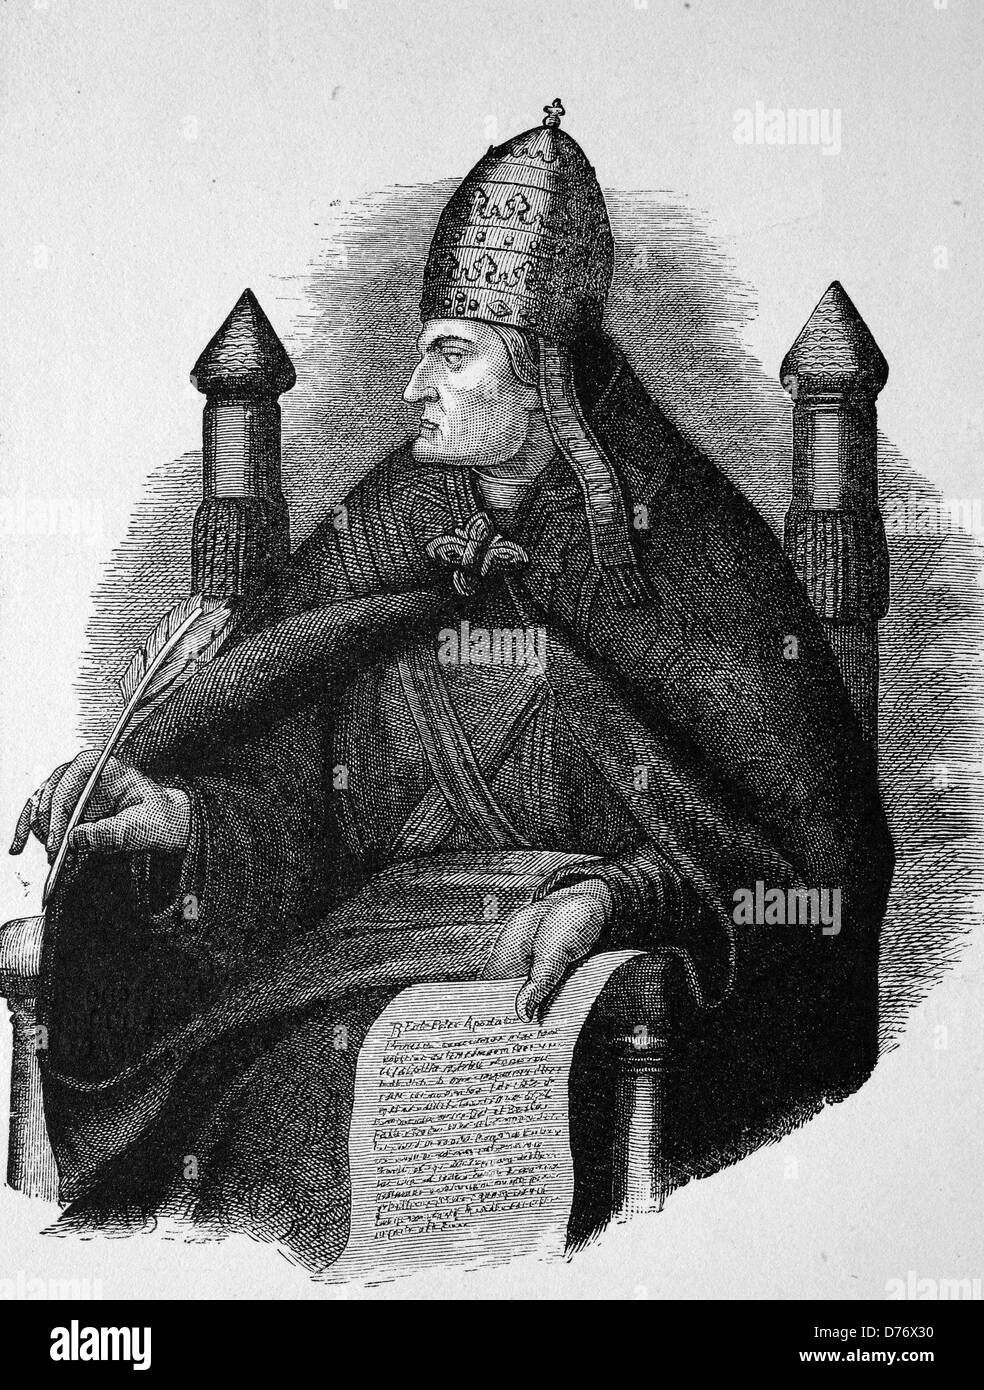 Gregory VII, Hildebrand of Soana, 1020 - 1085, Pope from 1073 - 1085, historical woodcut, 1870 - Stock Image